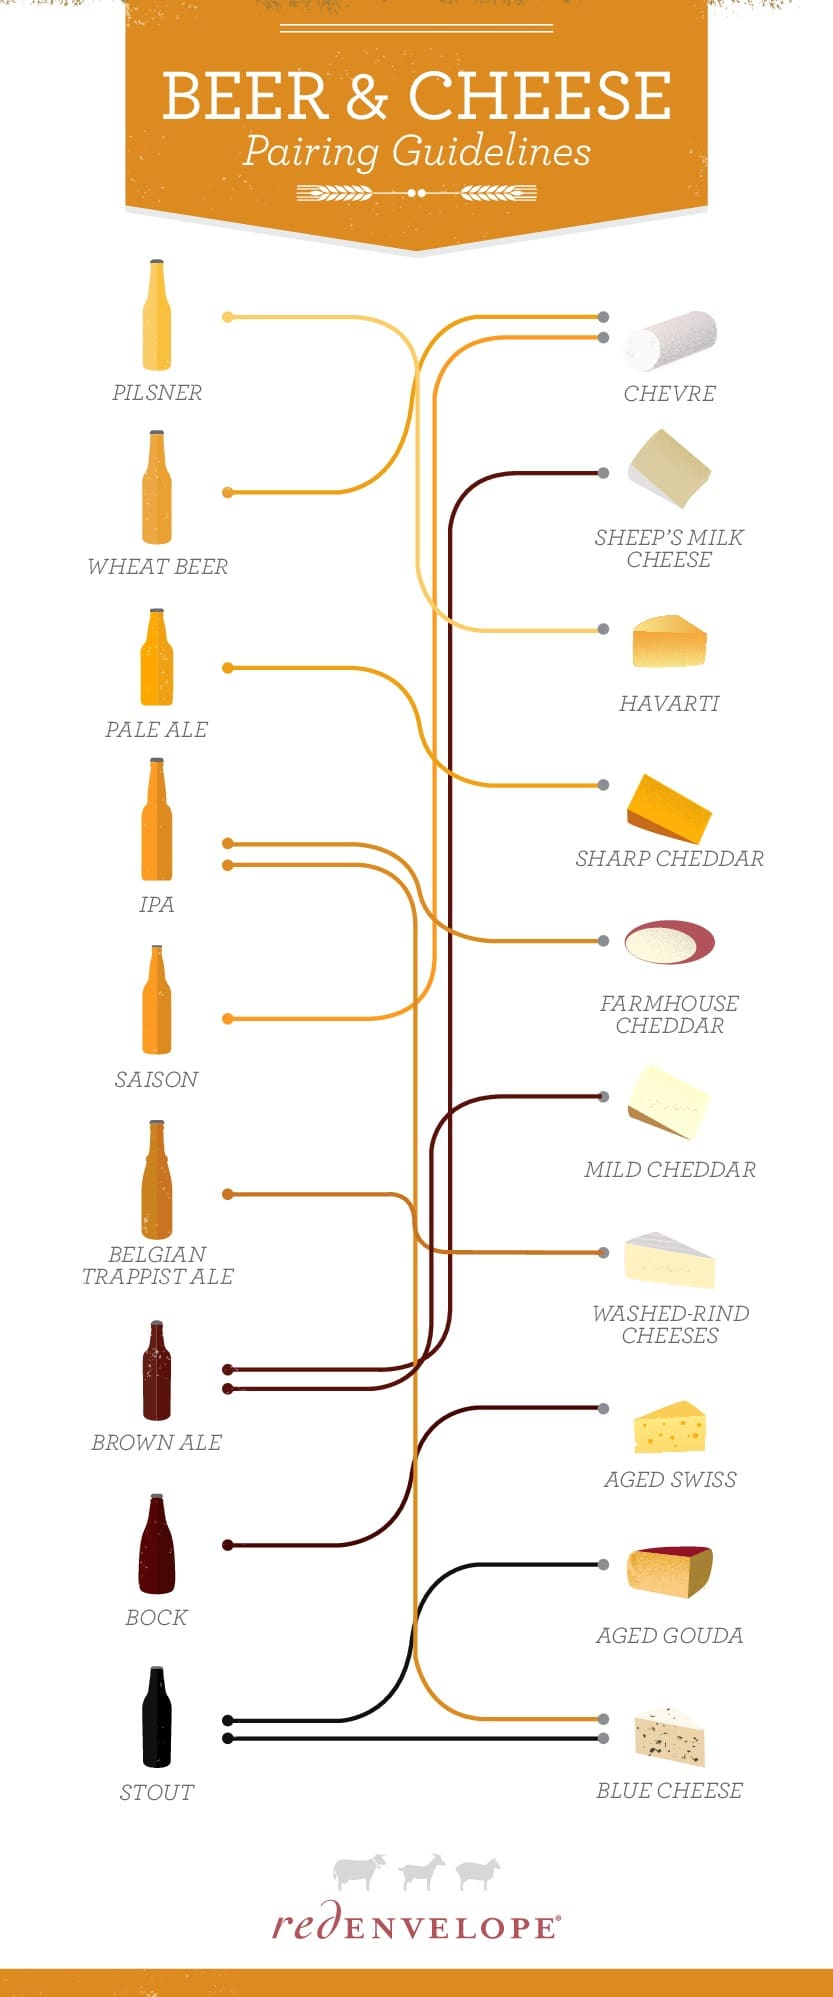 beer-and-cheese-pairing-guide_52e921e29818b.jpg